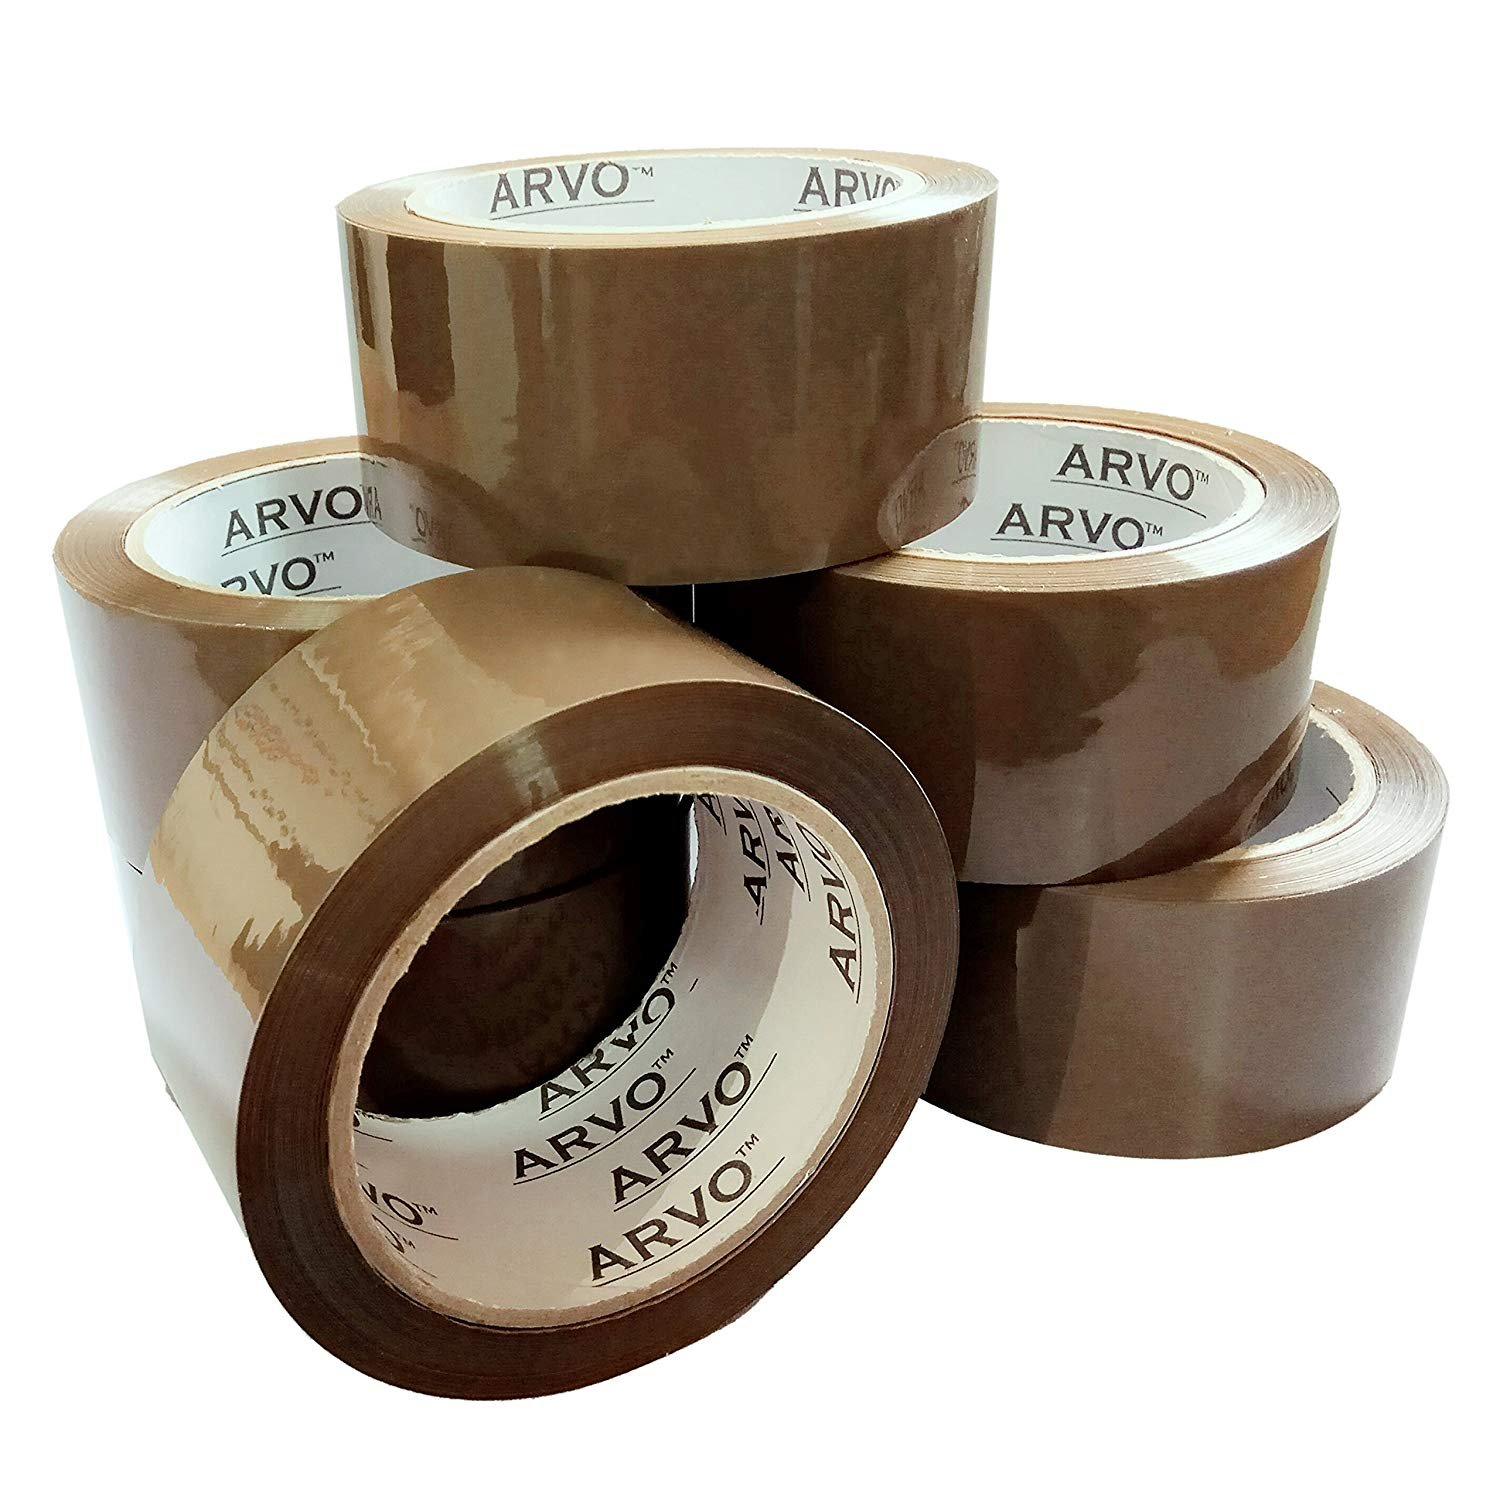 Packing Tape, Shipping, Moving Supplies, Packing Supplies, Packaging Tape, Brown Packing Tape , Heavy Duty Packing Tape , Box Tap - 6 Roll Pack (48mm x 66 Meter)